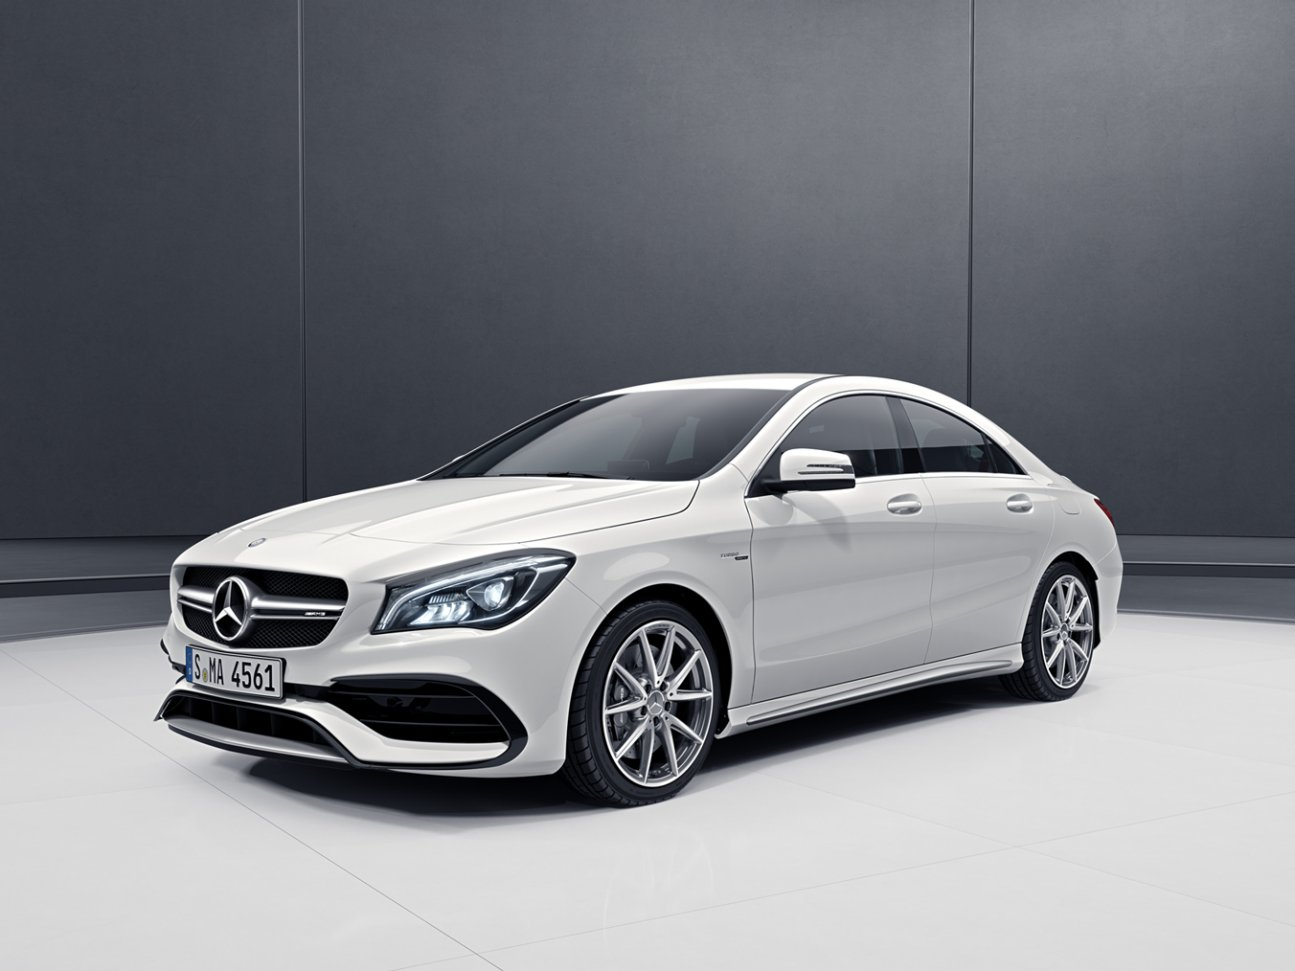 Ibb blog mercedes benz launches cla 45 4matic and gla 45 for Mercedes benz cla 45 price